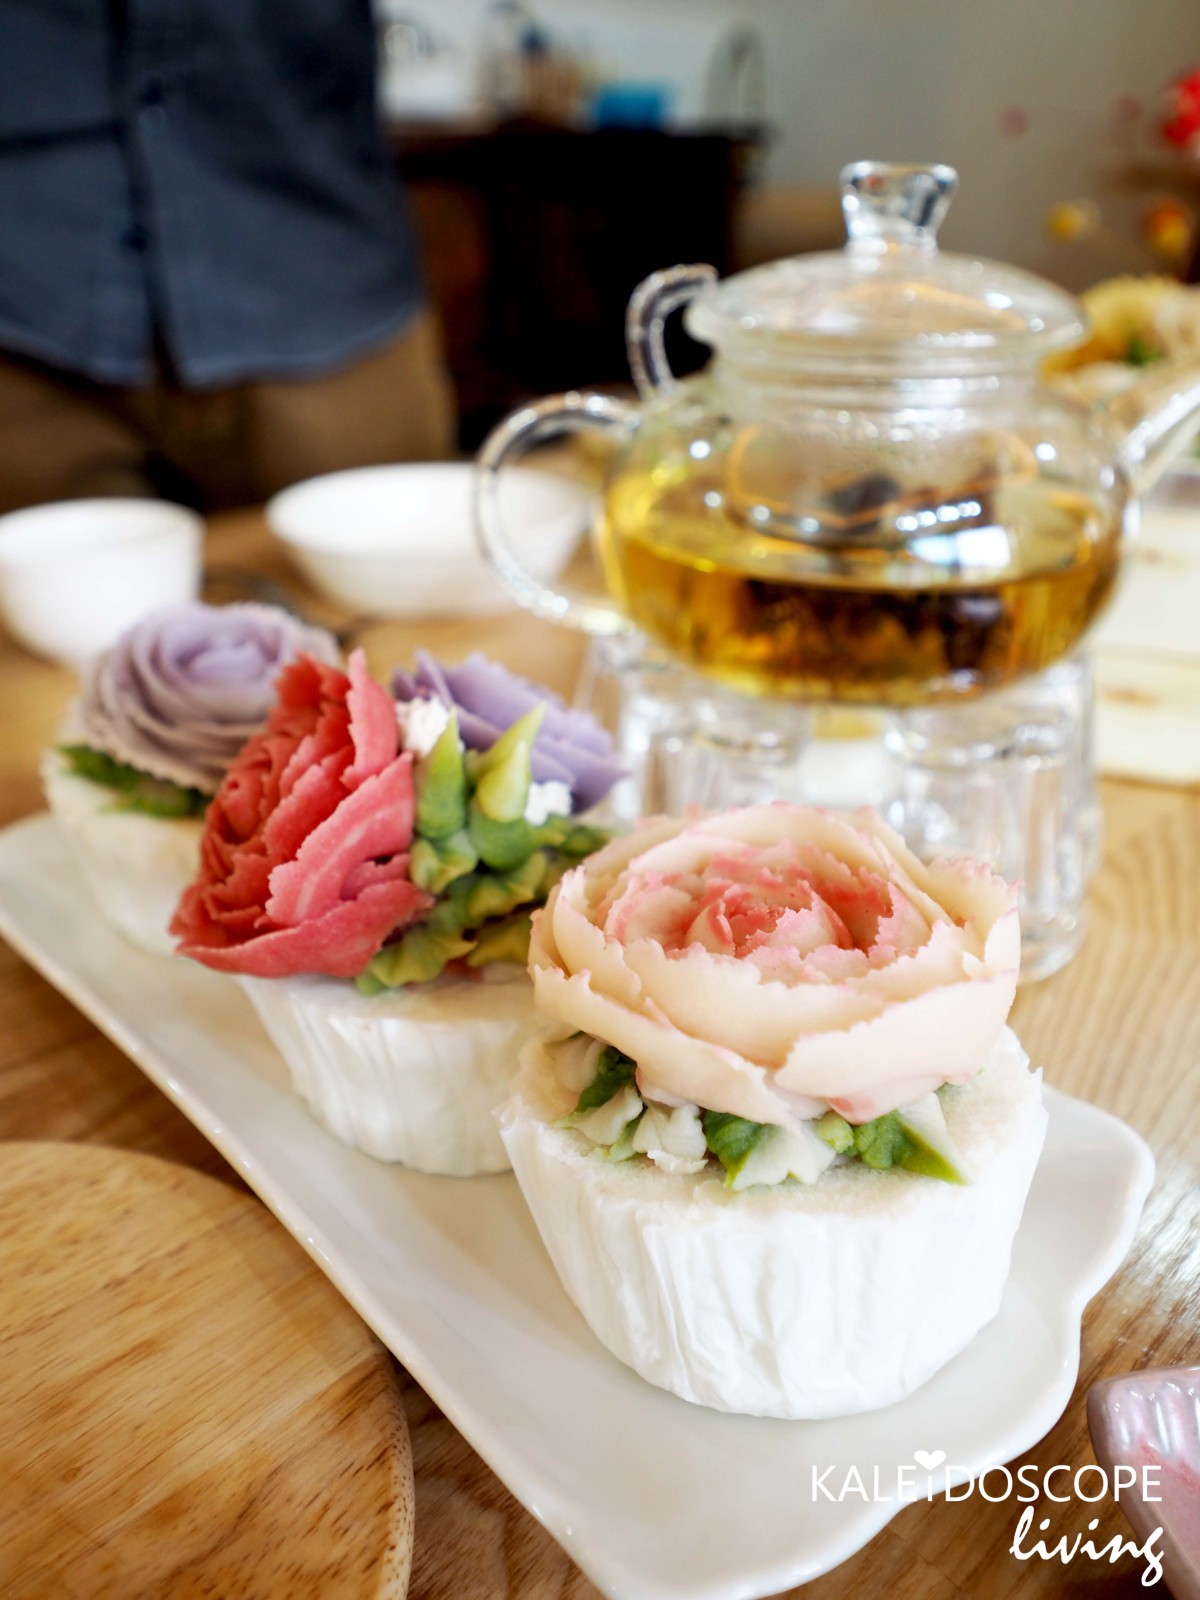 Bloom Your Own Edible Flower Cupcake and Eat It in Seoul!